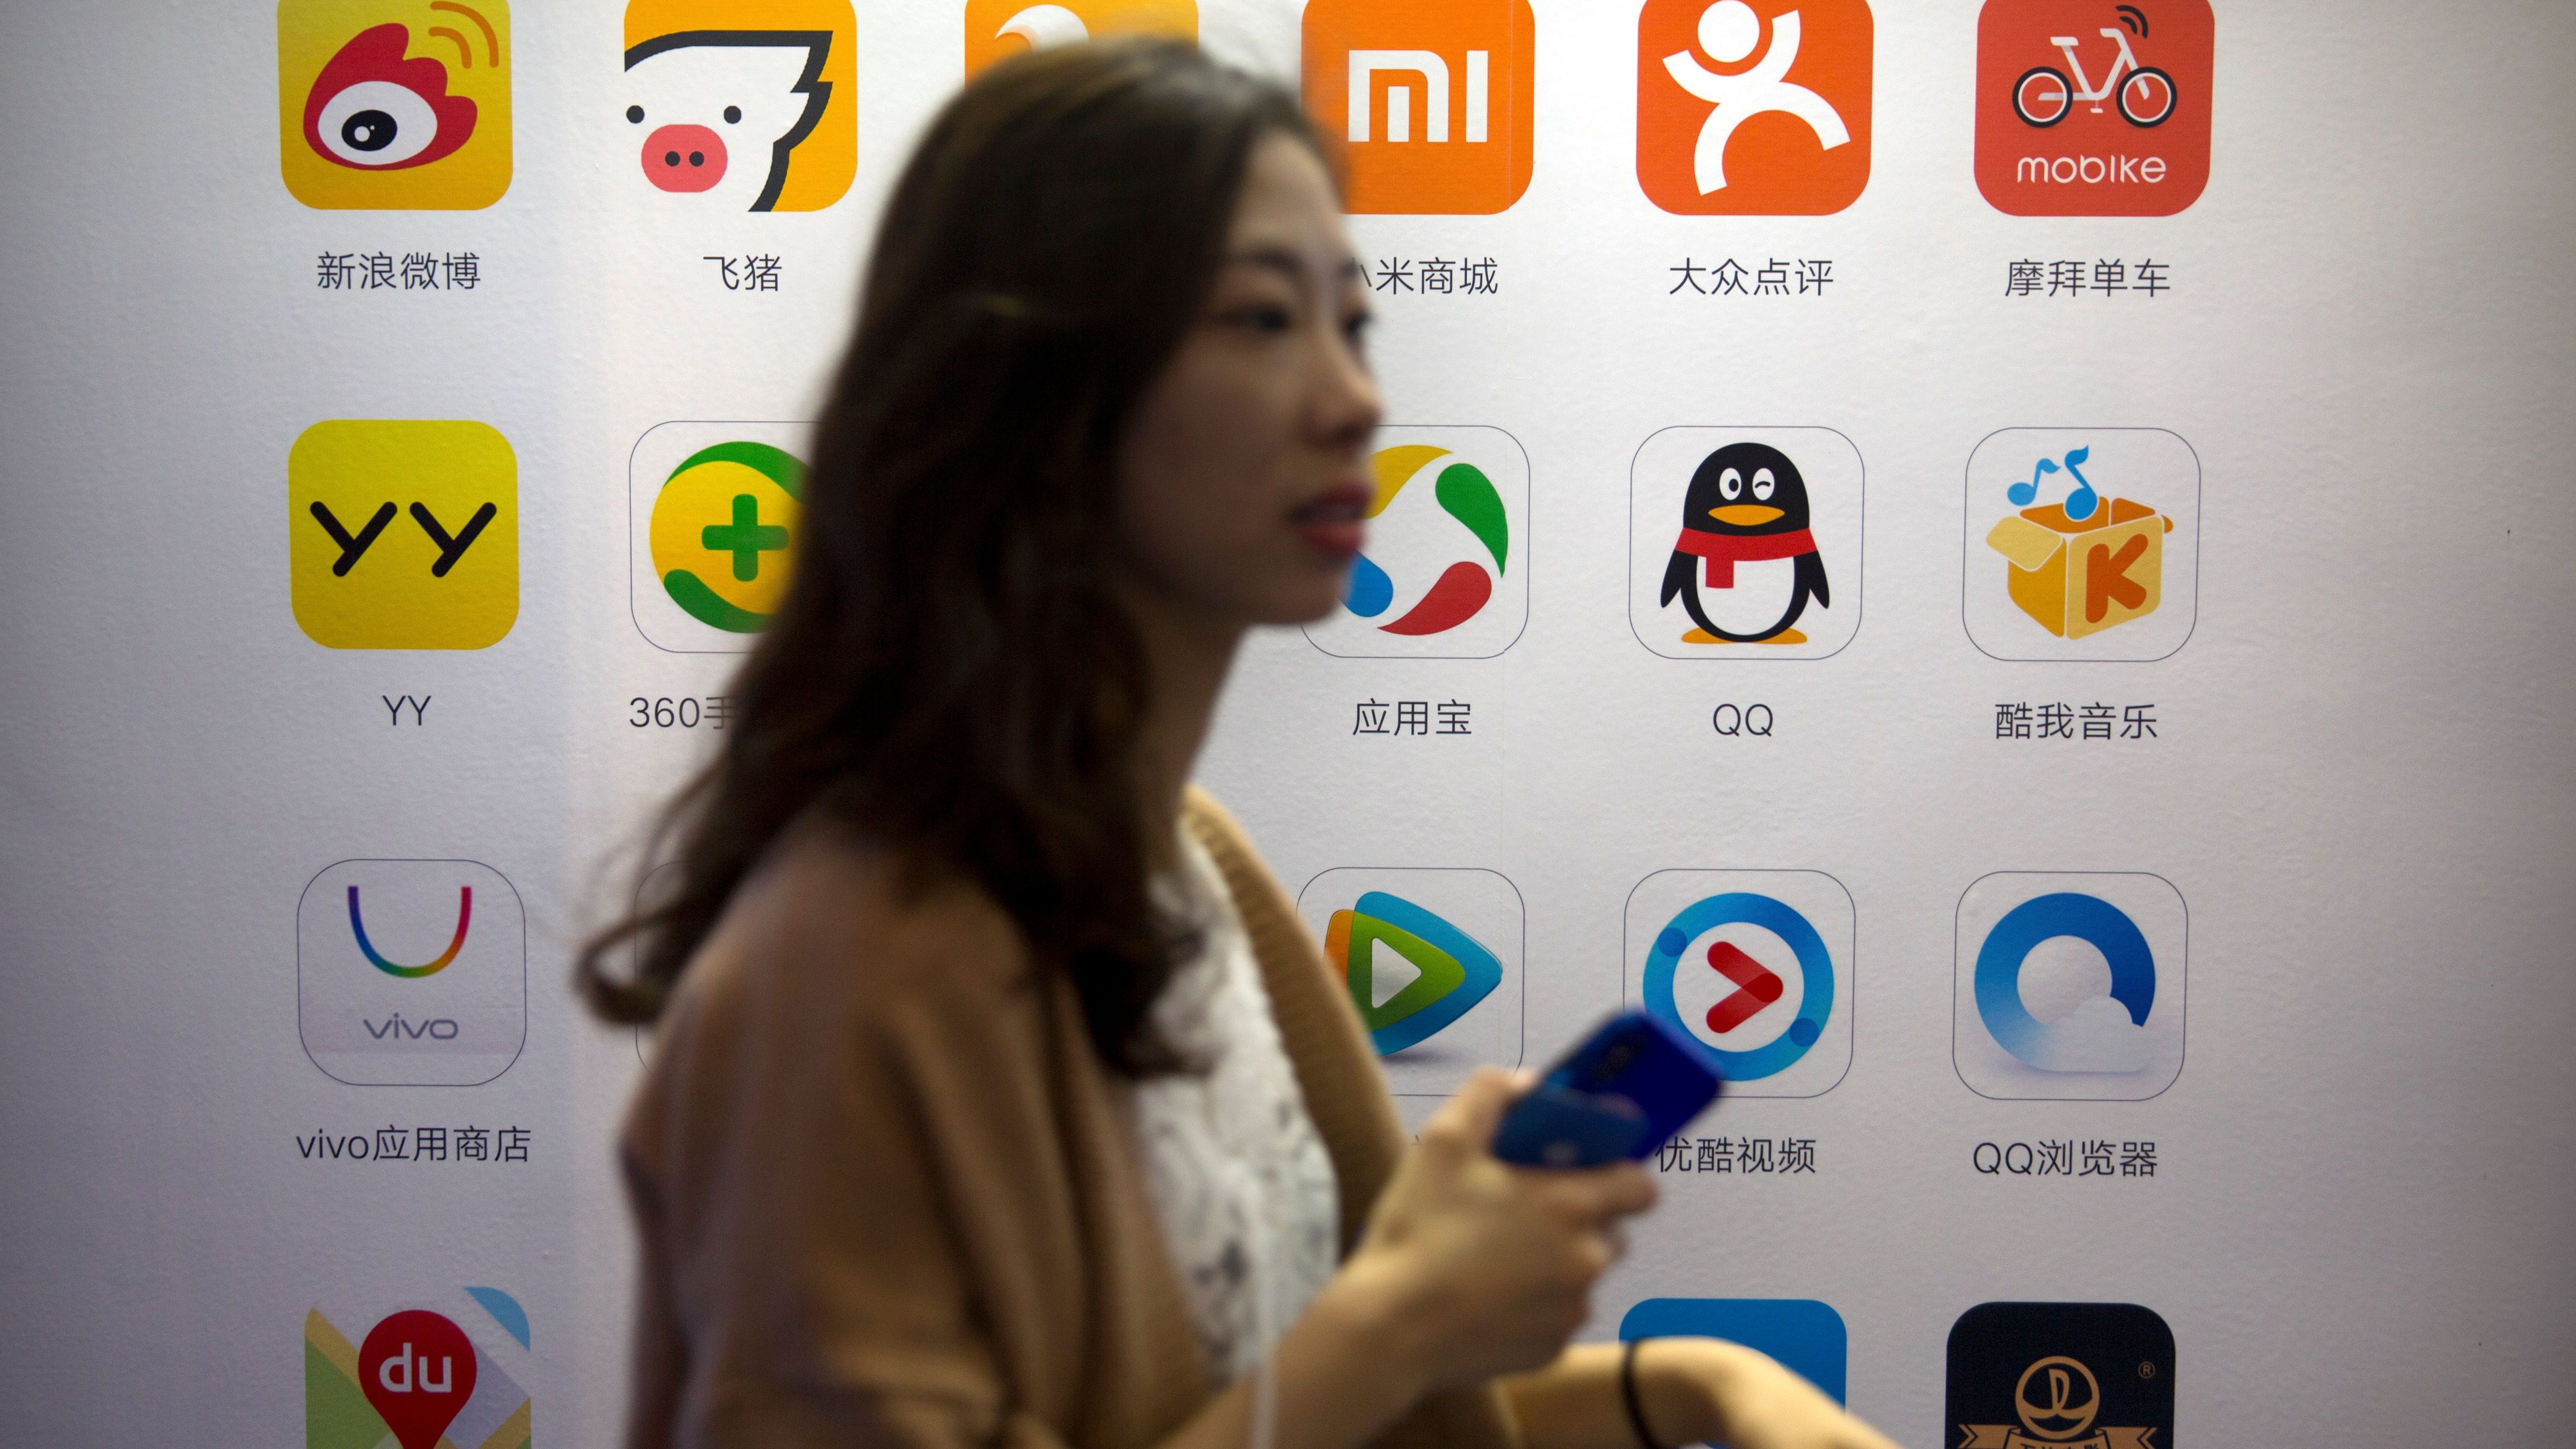 A woman holds her cellphone as she walks past a display showing the icons of popular Chinese smartphone apps at the Global Mobile Internet Conference (GMIC) in Beijing, Thursday, April 26, 2018. The GMIC features current and future trends in the mobile Internet industry by some major foreign and Chinese internet companies. (AP Photo/Mark Schiefelbein)